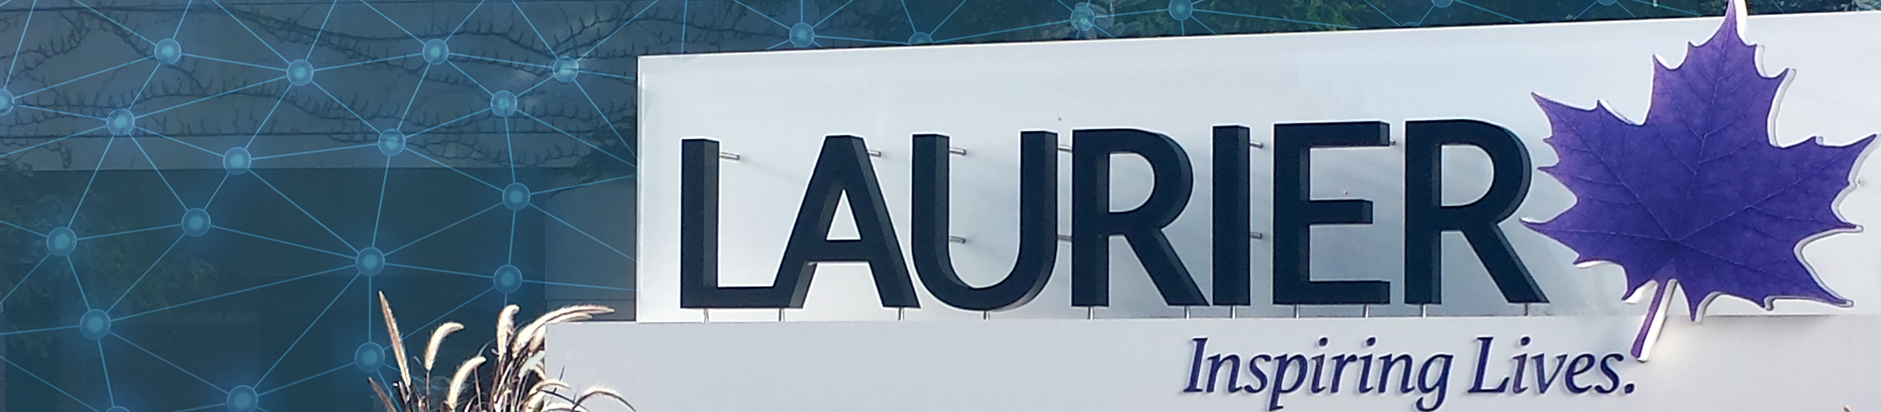 Wilfred-Laurier-Sign